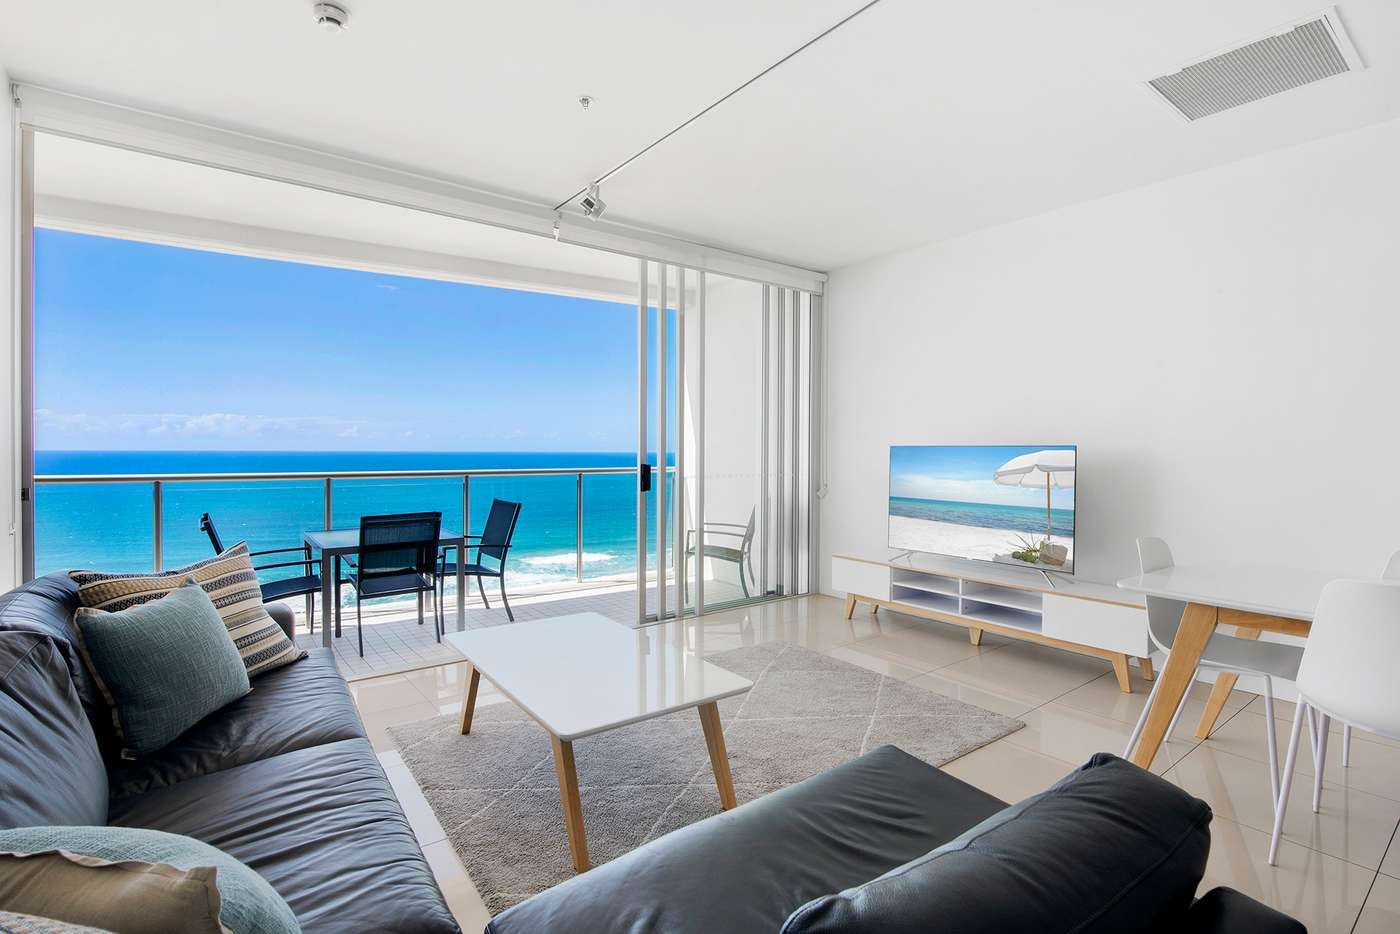 Main view of Homely apartment listing, 1904/159 Old Burleigh Road, Broadbeach QLD 4218